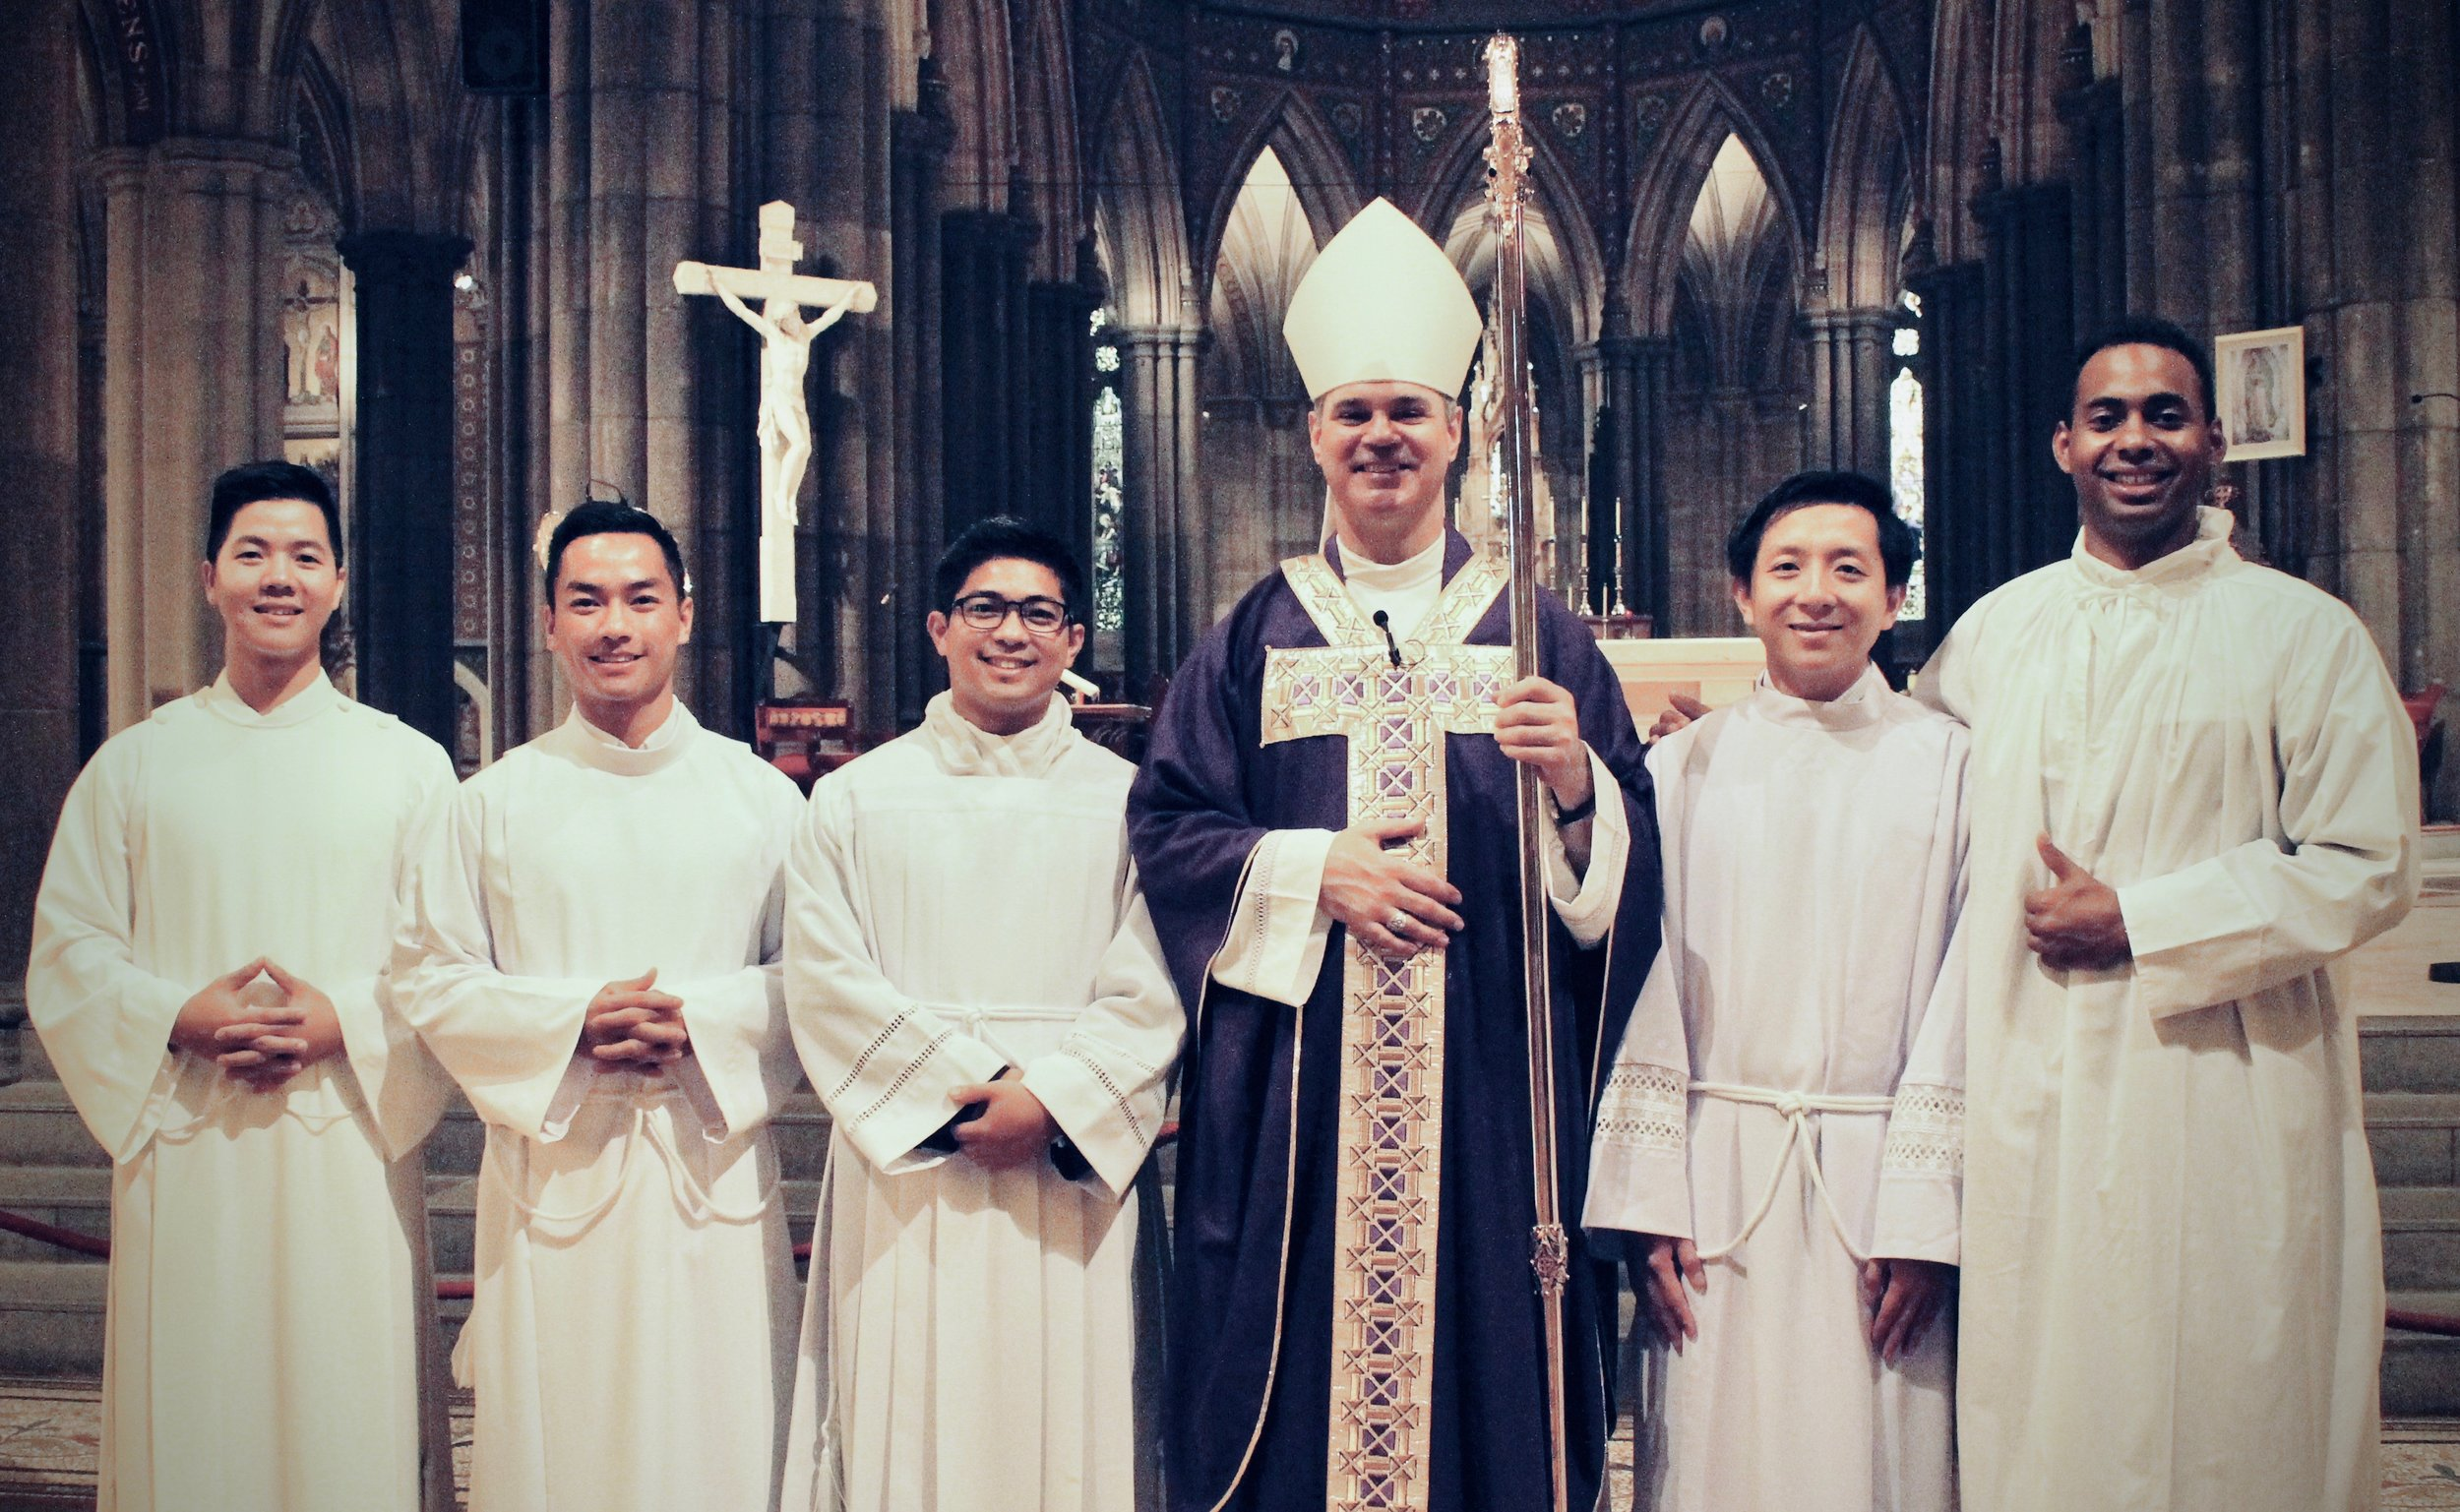 Lectors Peter Nguyen, Tien Tran, Allan Aclan, An Hoang Le and, Jean-Sebastien Gery with Archbishop Peter Comensoli (centre).